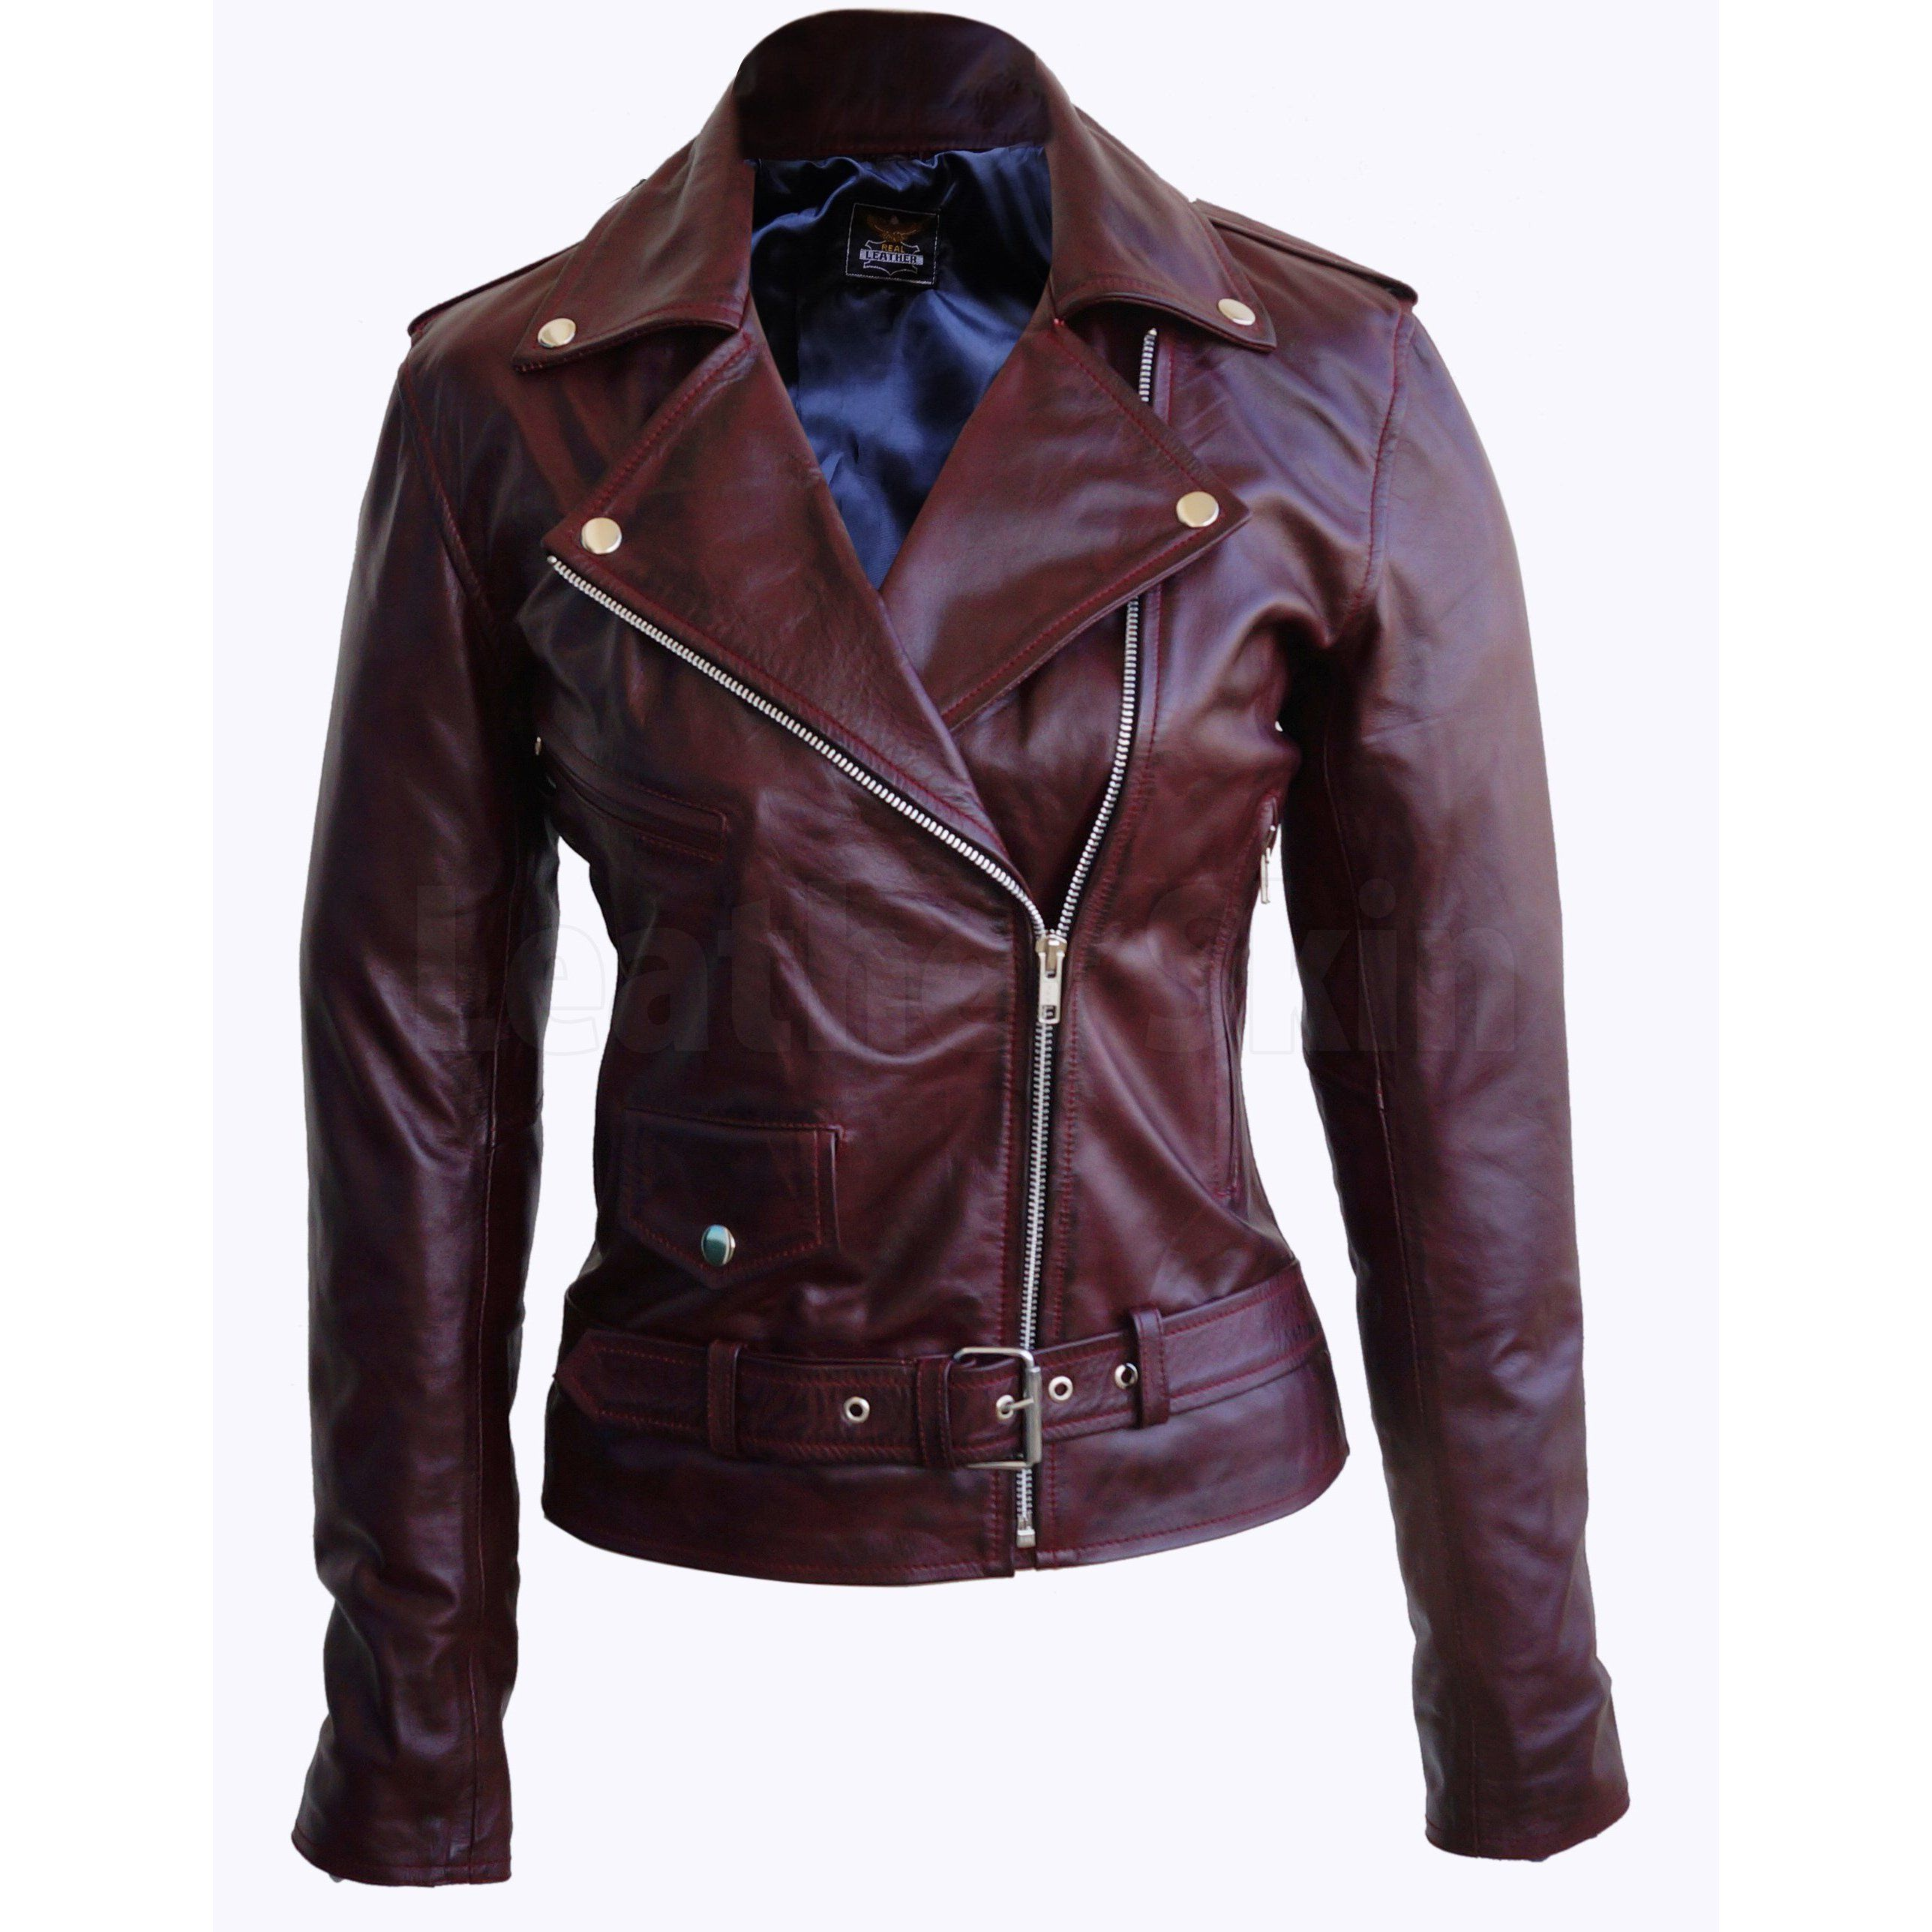 Women Distressed Red Brando Belted Sheep Leather Jacket With Epaulettes Leather Jackets Women Leather Jacket Celebrities Leather Jacket [ 2576 x 2576 Pixel ]